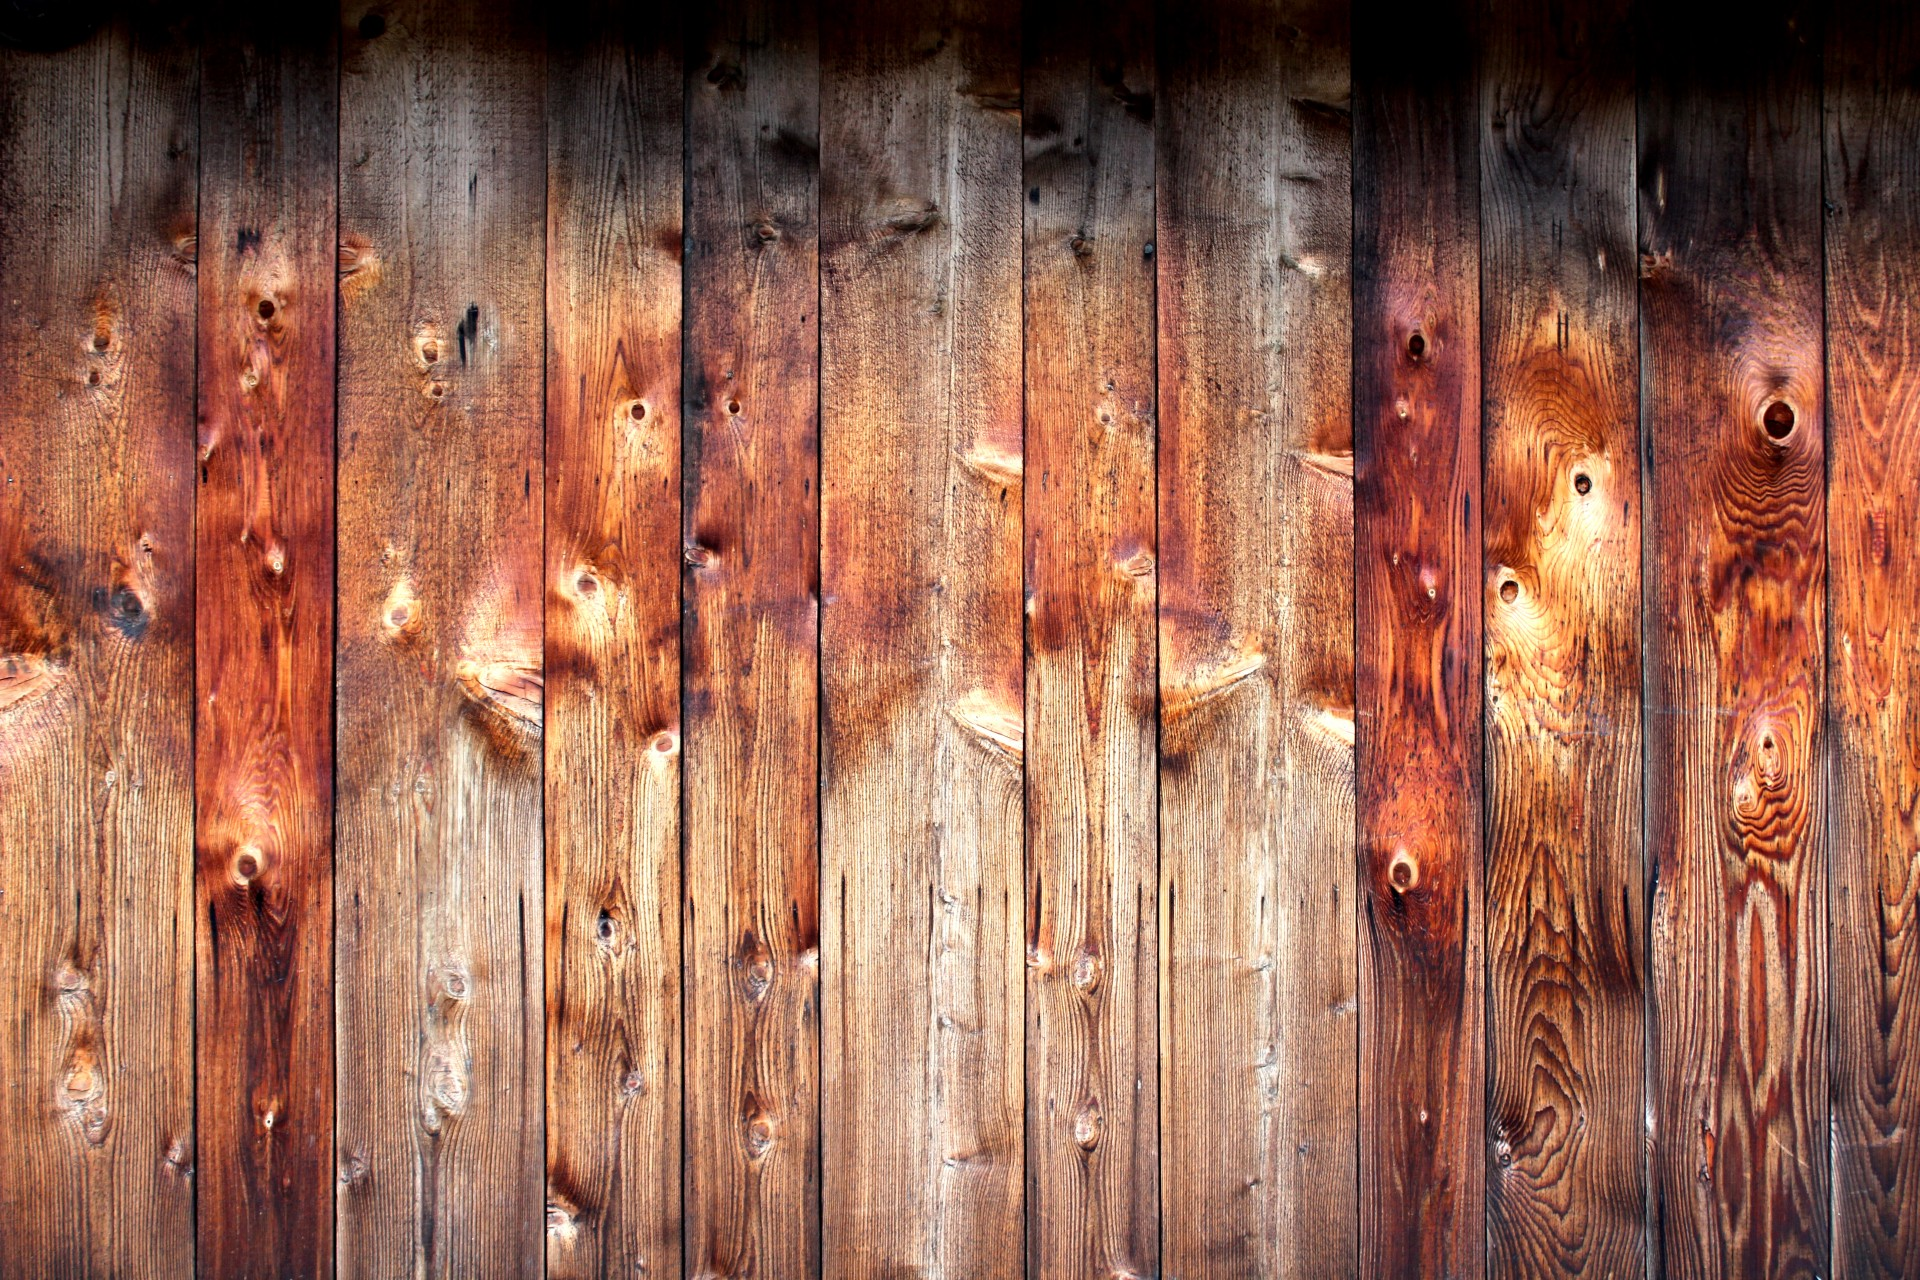 Rustic Barn Wood Background 1920x1280